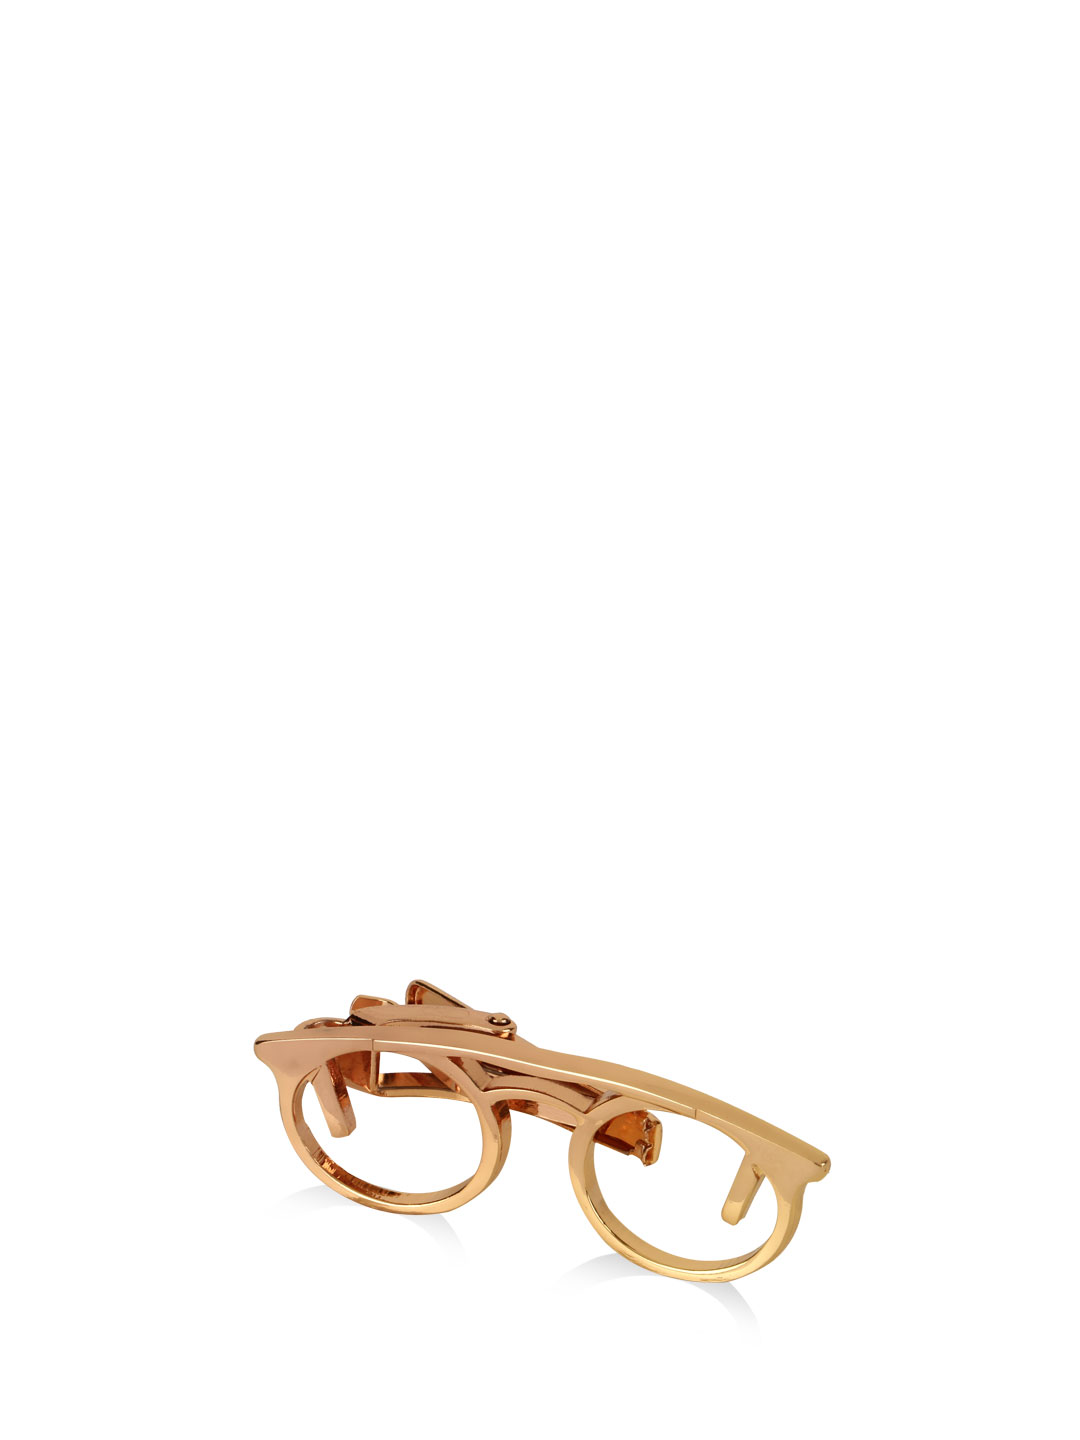 Chasquido Gold Reading Glasses Tie Clip 1